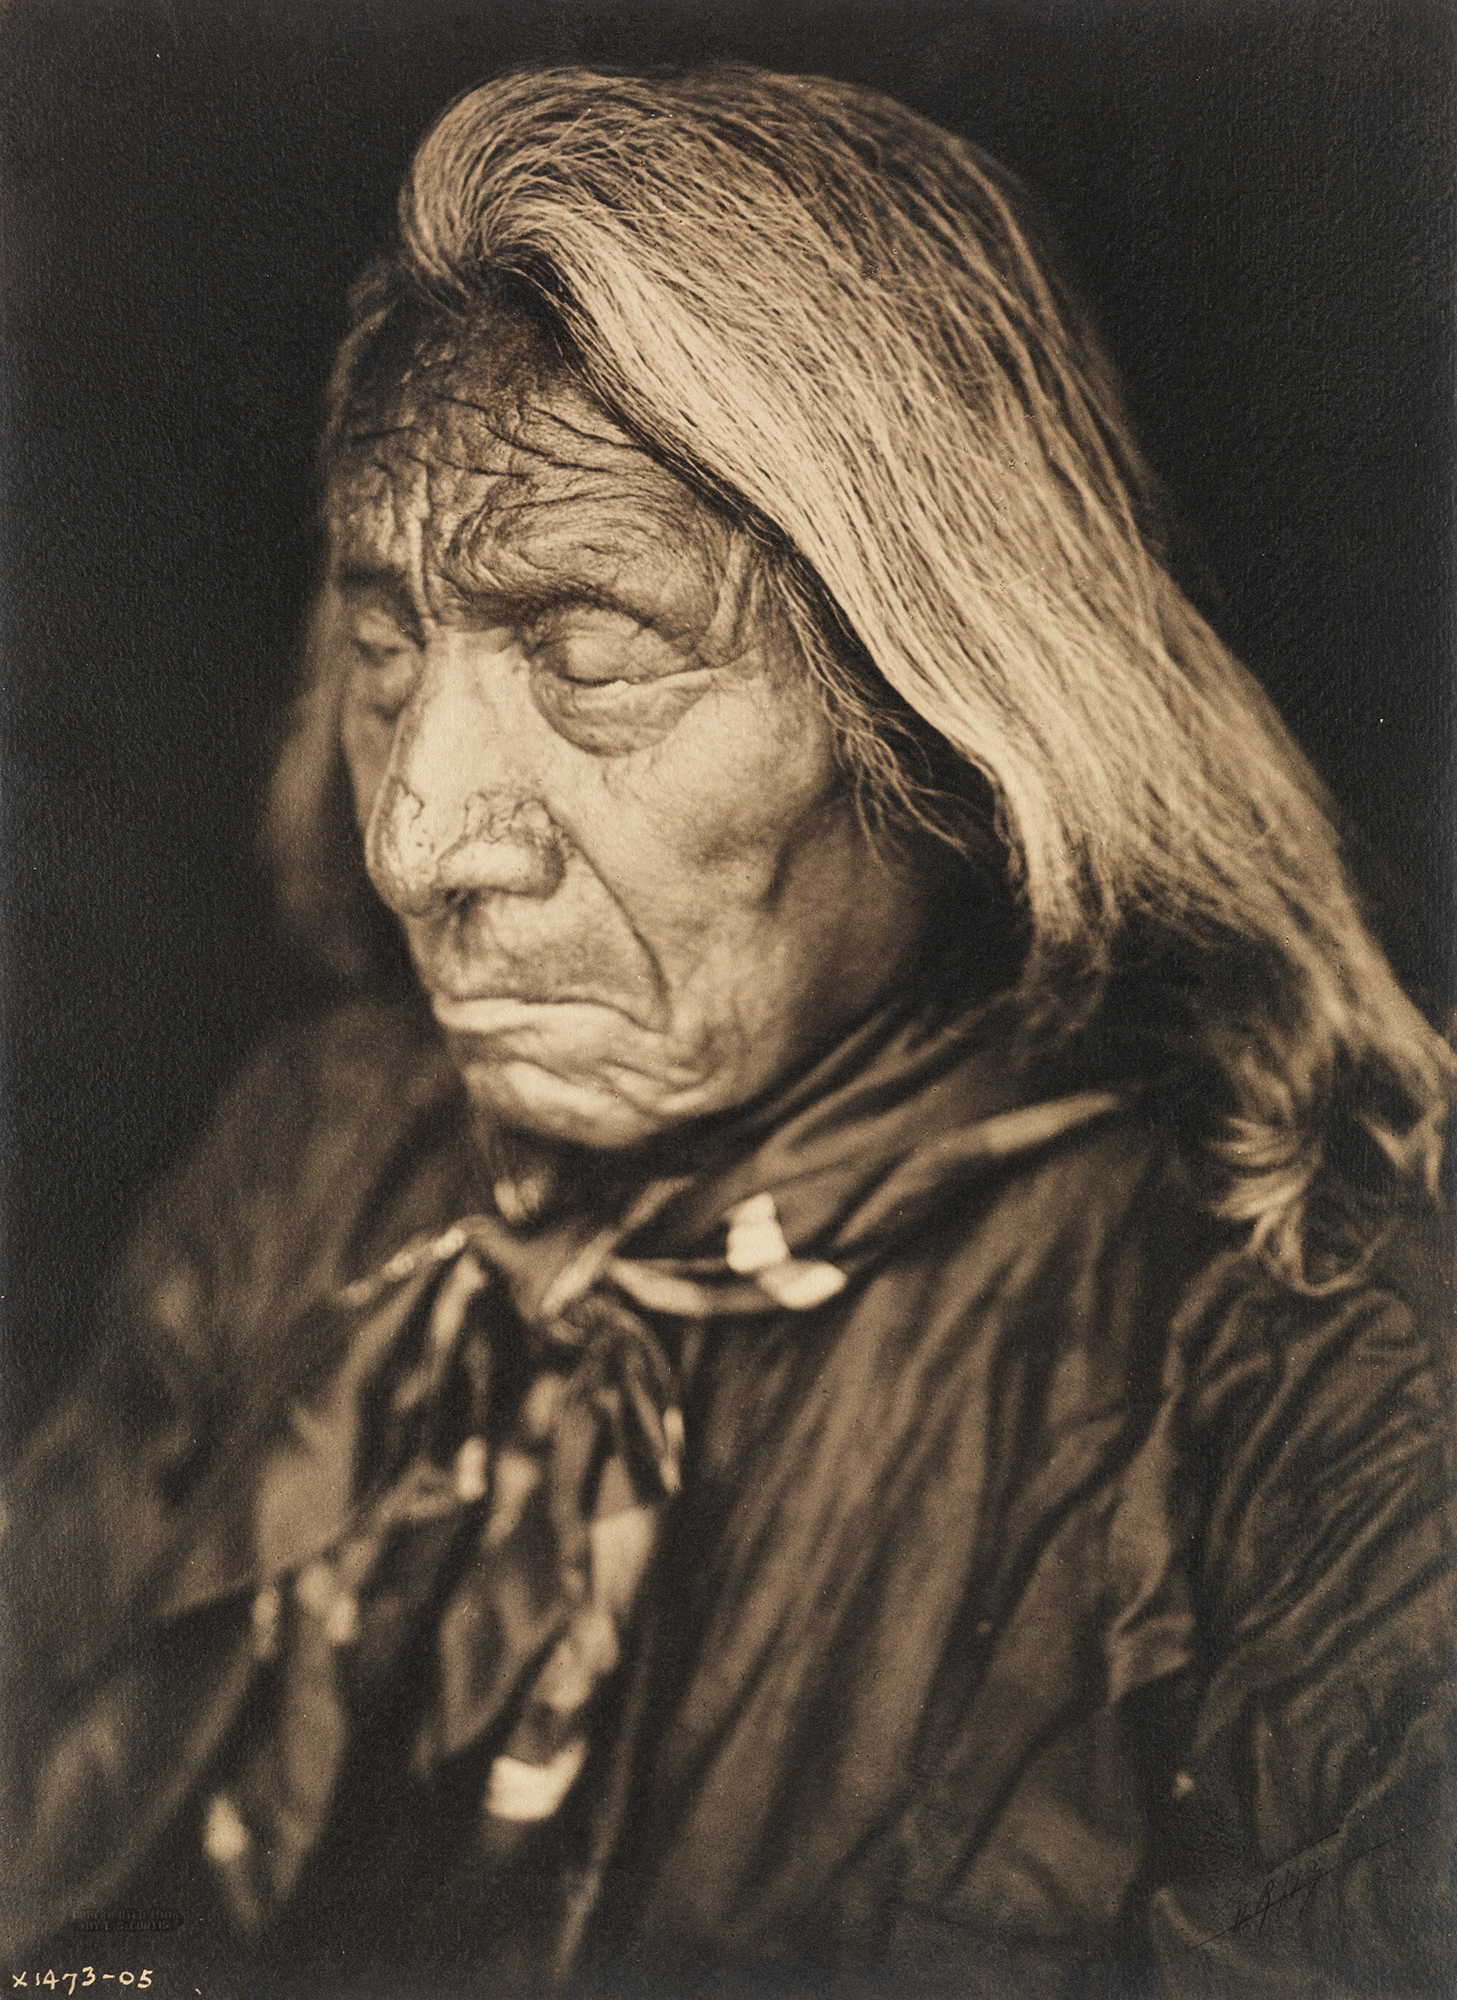 Edward S. Curtis's portrait of Oglala Lakota leader Red Cloud.